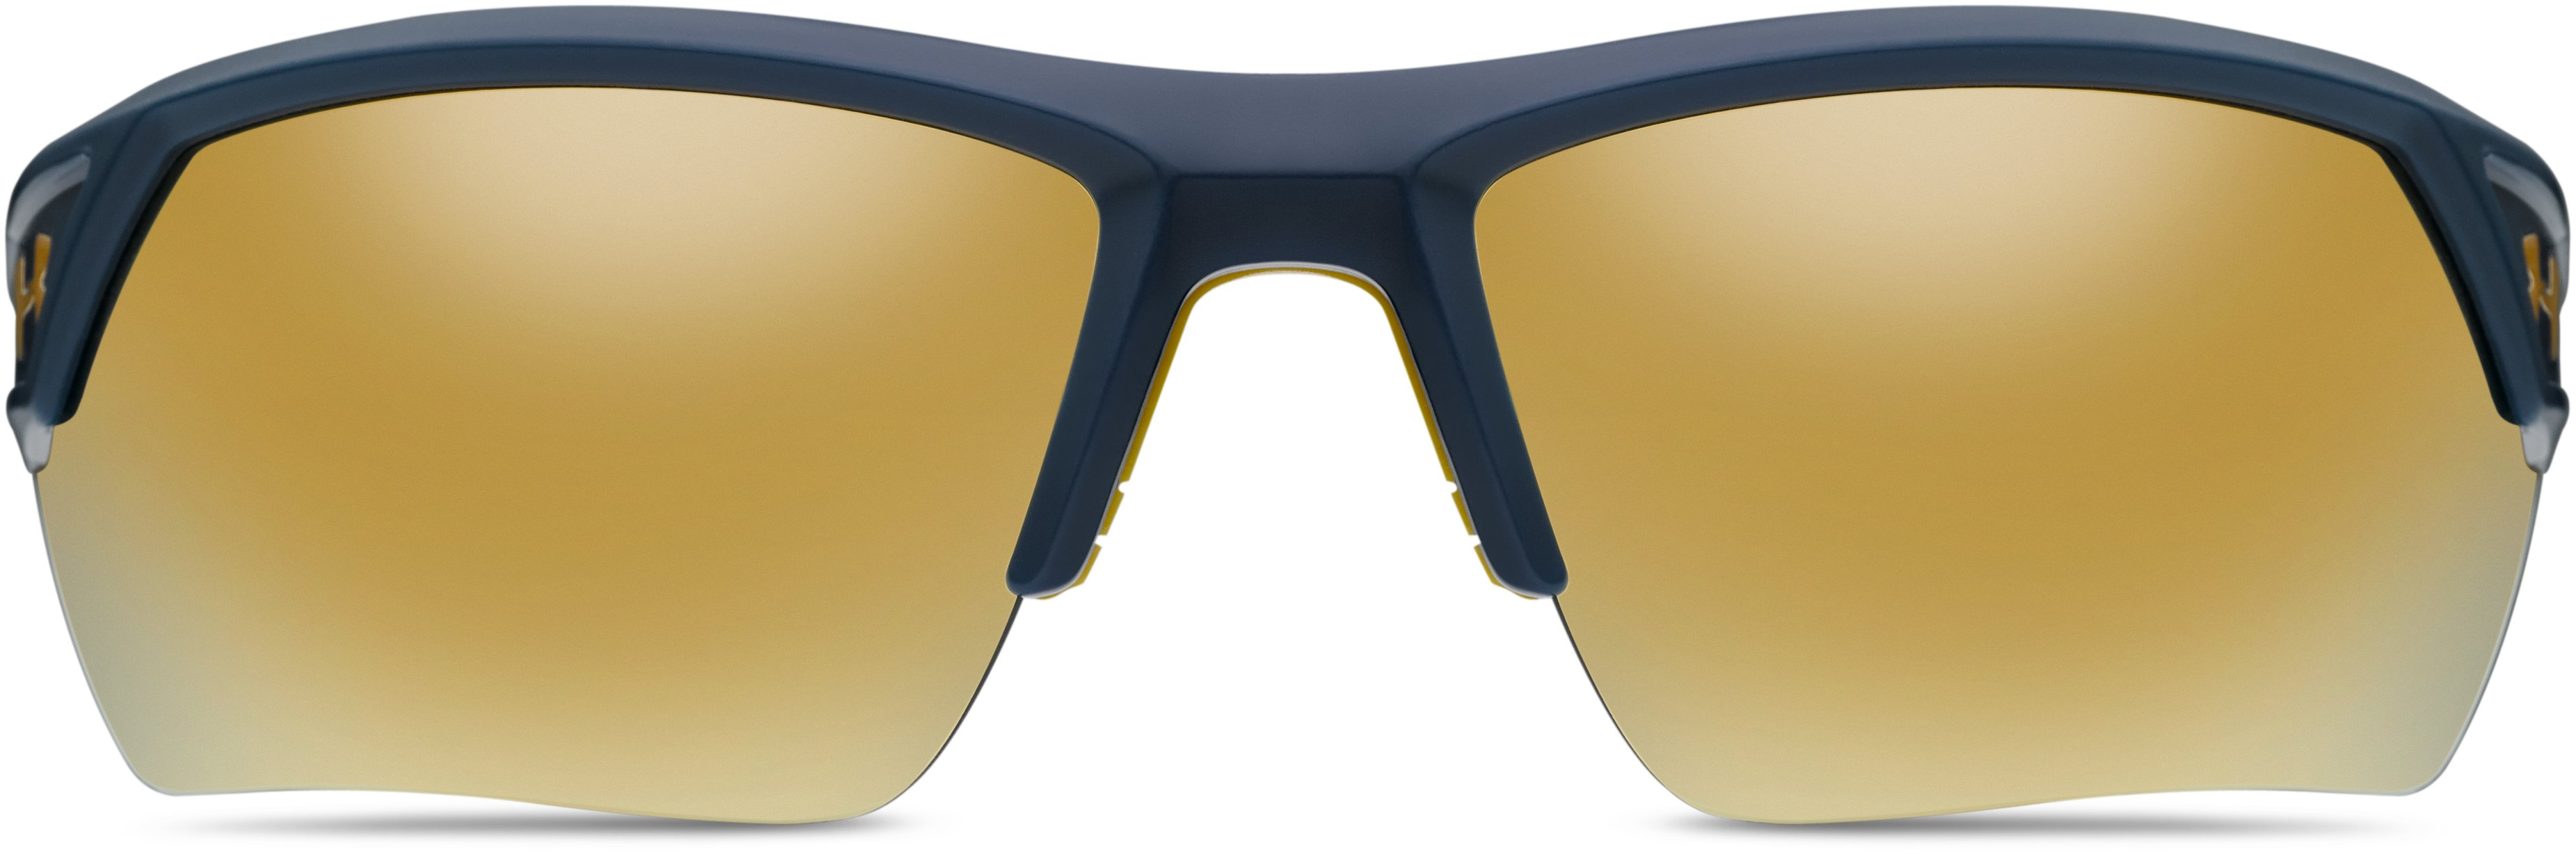 UA Igniter 2.0 Sunglasses, SATIN NAVY